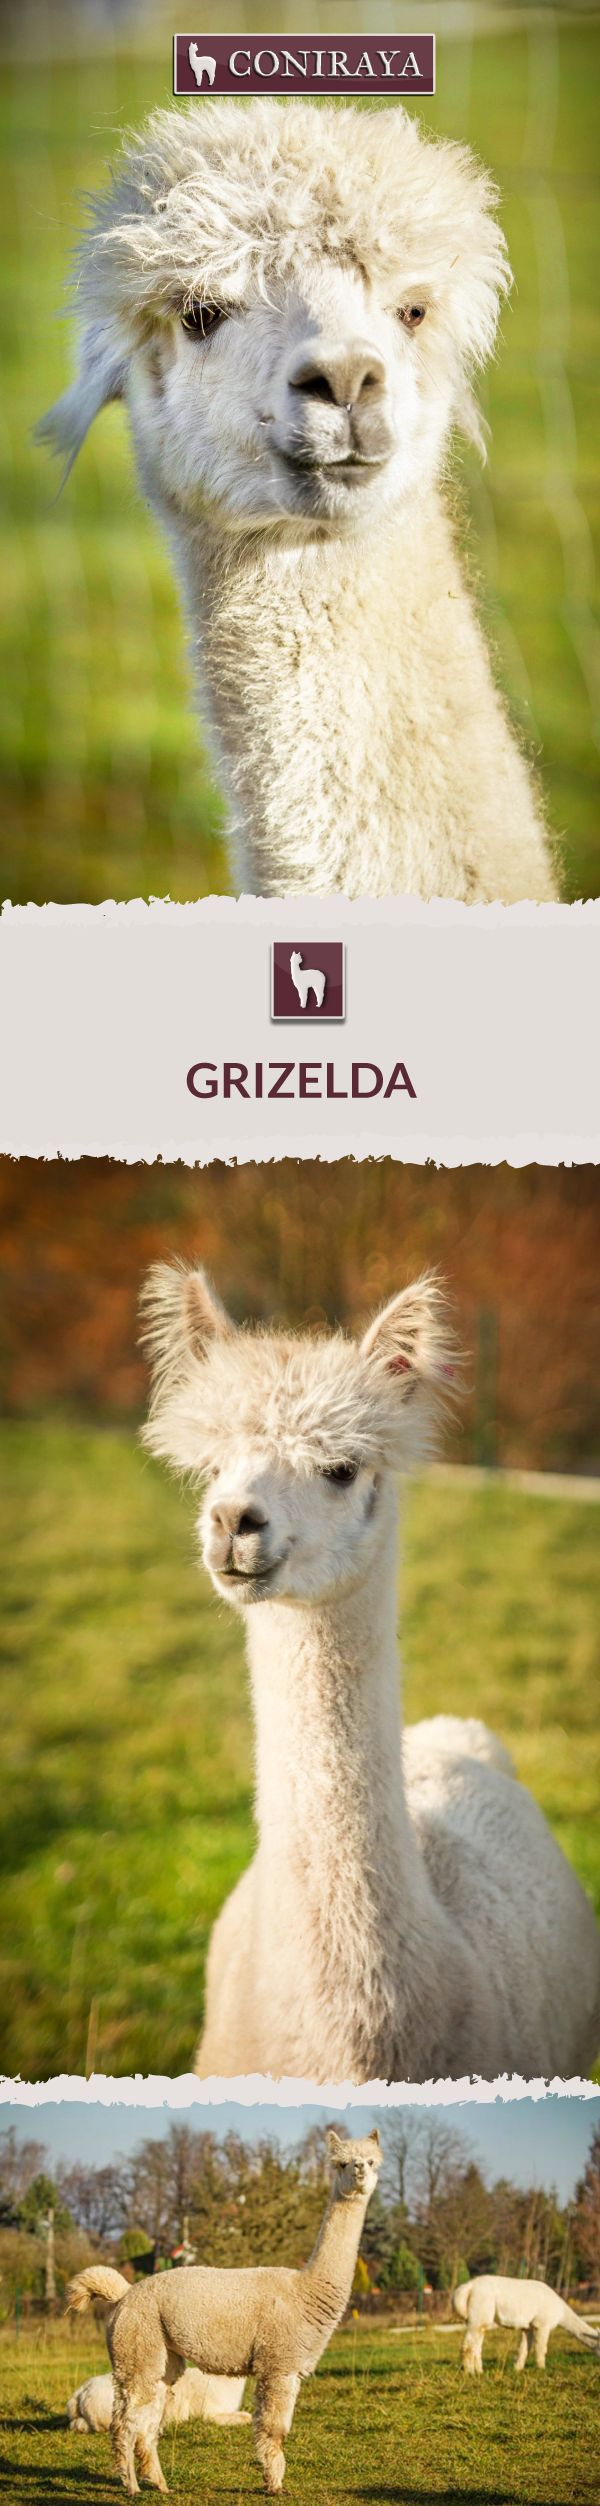 Meet Coniraya - Grizelda. This Alpaca was born in 2012 and its fiber is in color: Grey. Check out more details on our site!